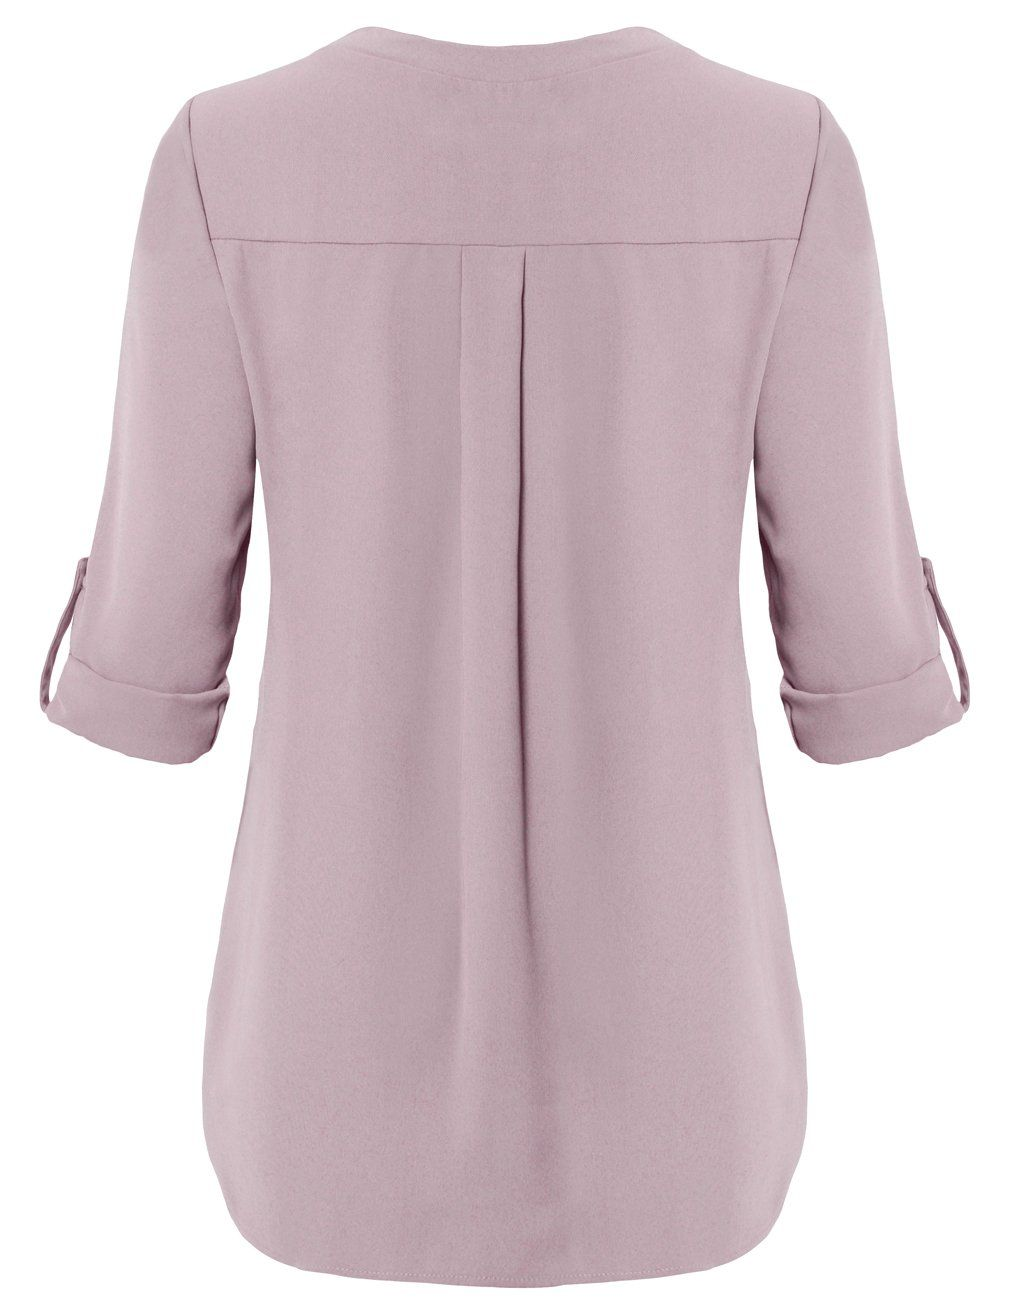 Youtalia Blouse For Women Ladies Casual Elegant Pink Chiffon Blouse V Neck Long Sleeve Pleated Easy Long Sleeve Blouse Dress Shirts For Women Blouses For Women [ 1313 x 1010 Pixel ]